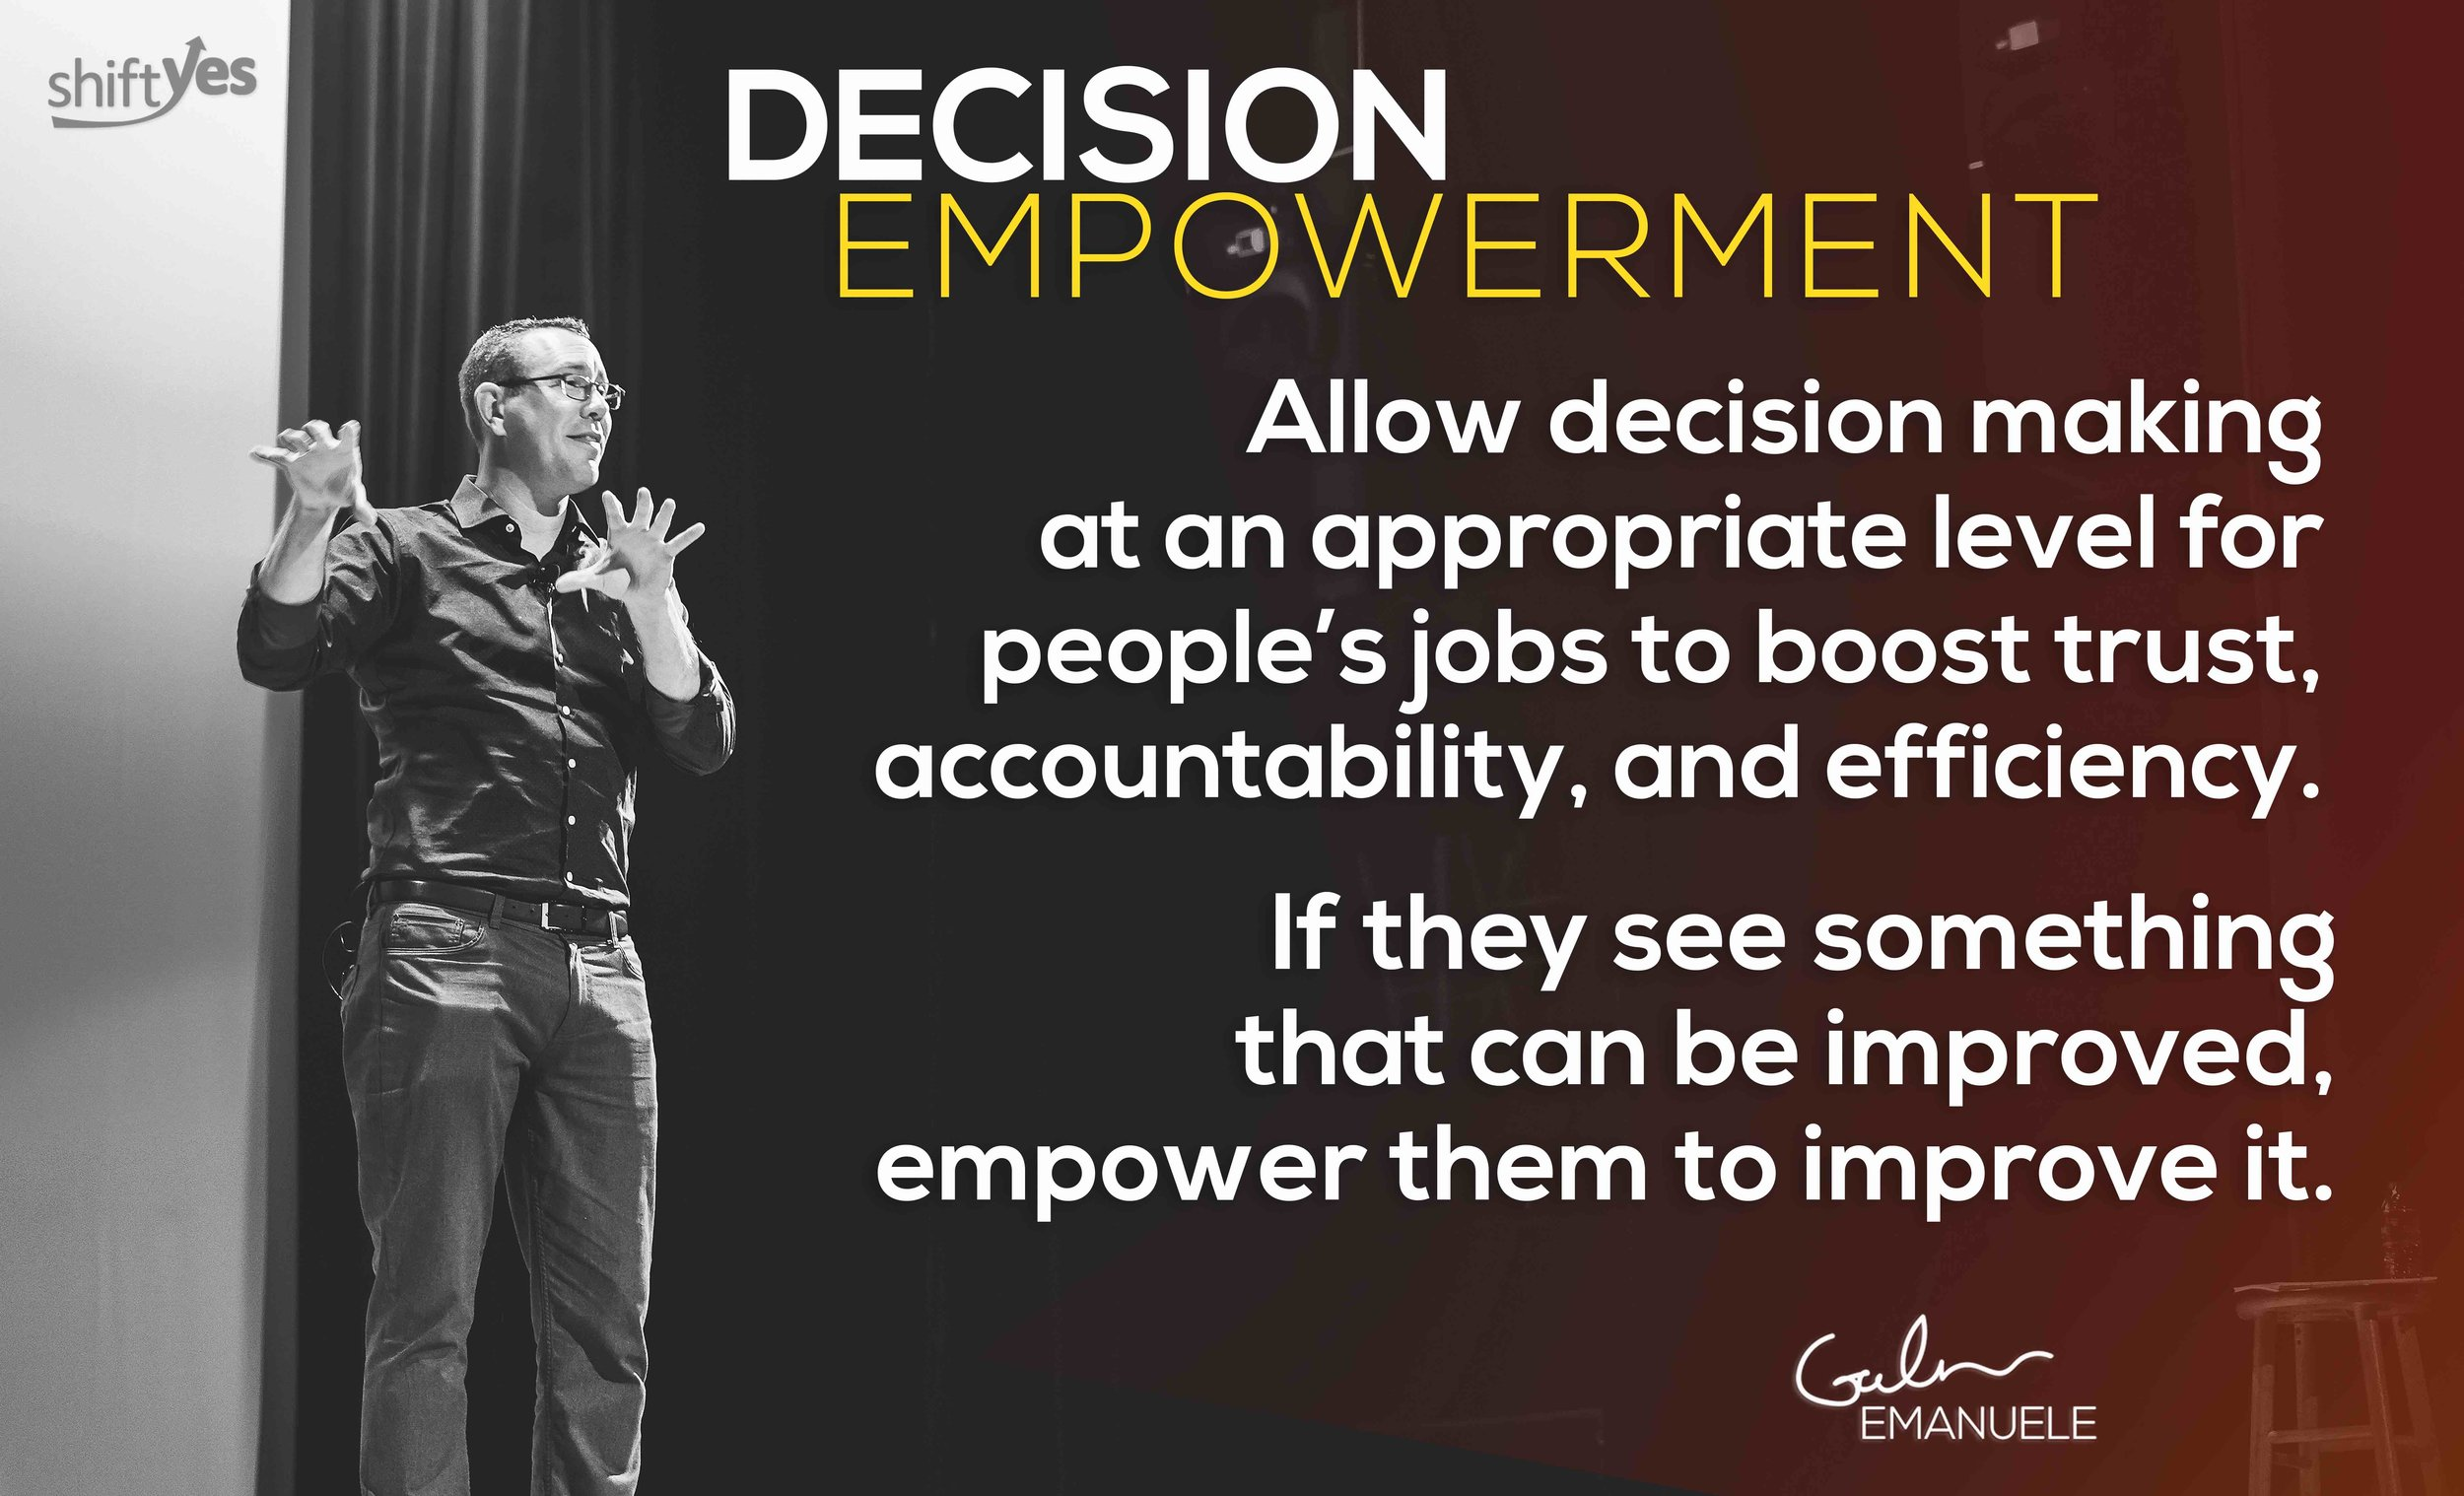 Decision empowerment galen emanuele #shiftyestribe shift yes tribe workplace culture.jpg